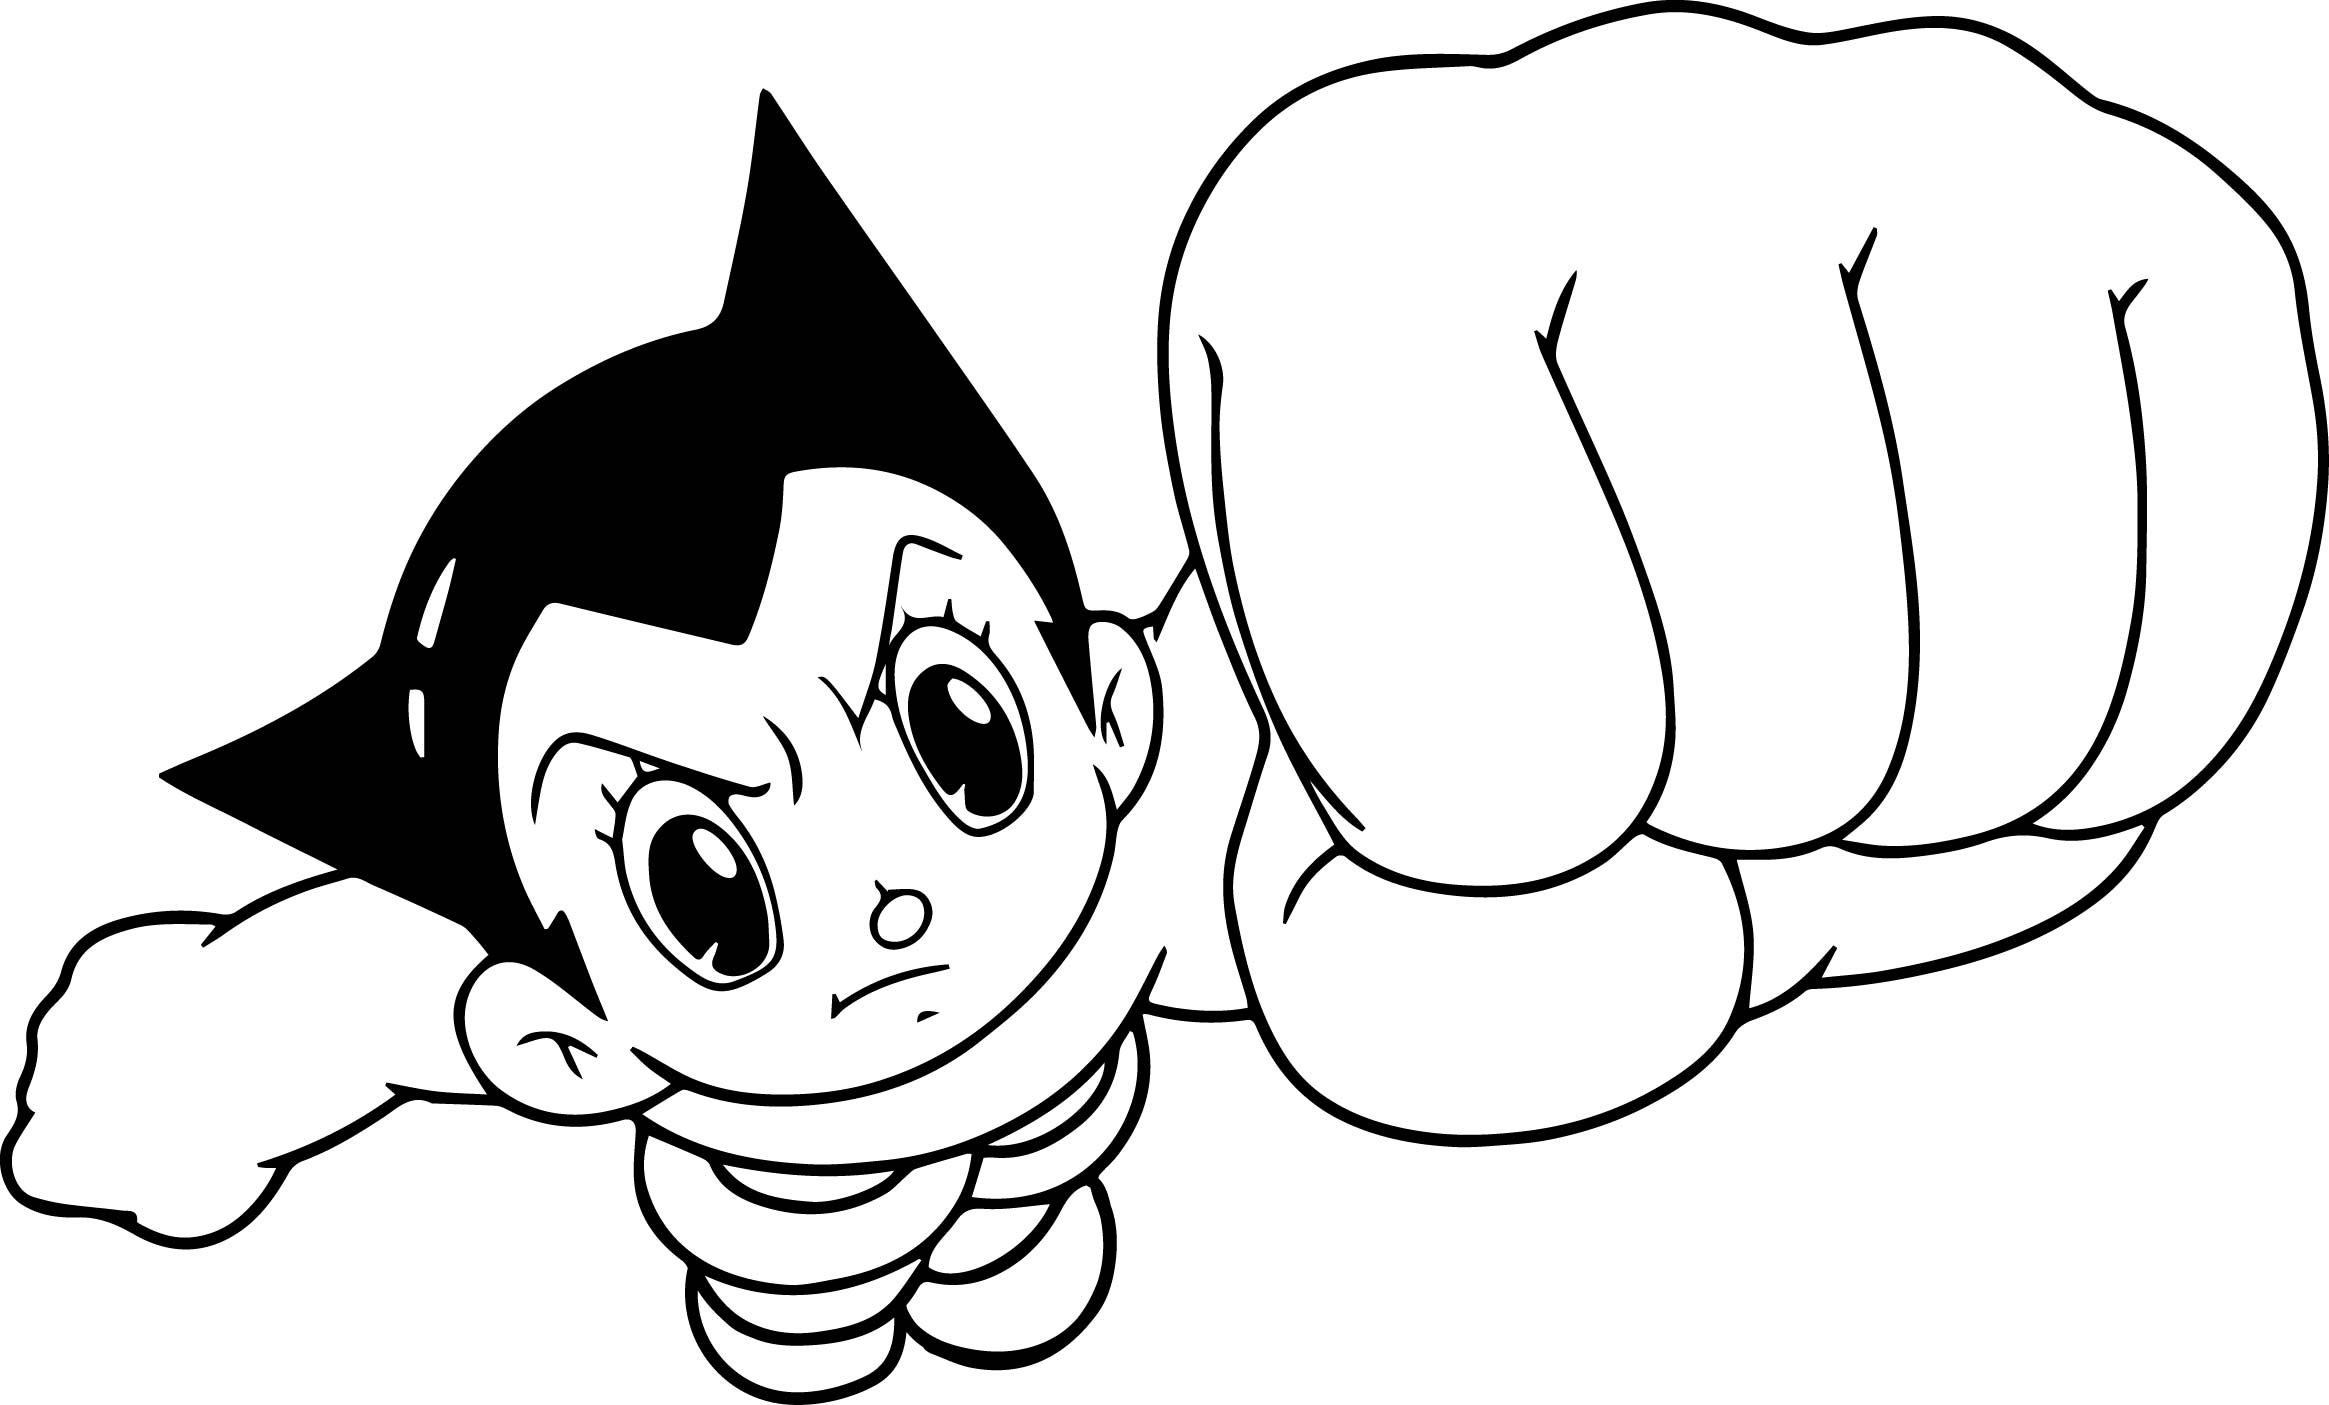 Astro Boy Punch Hand Coloring Page